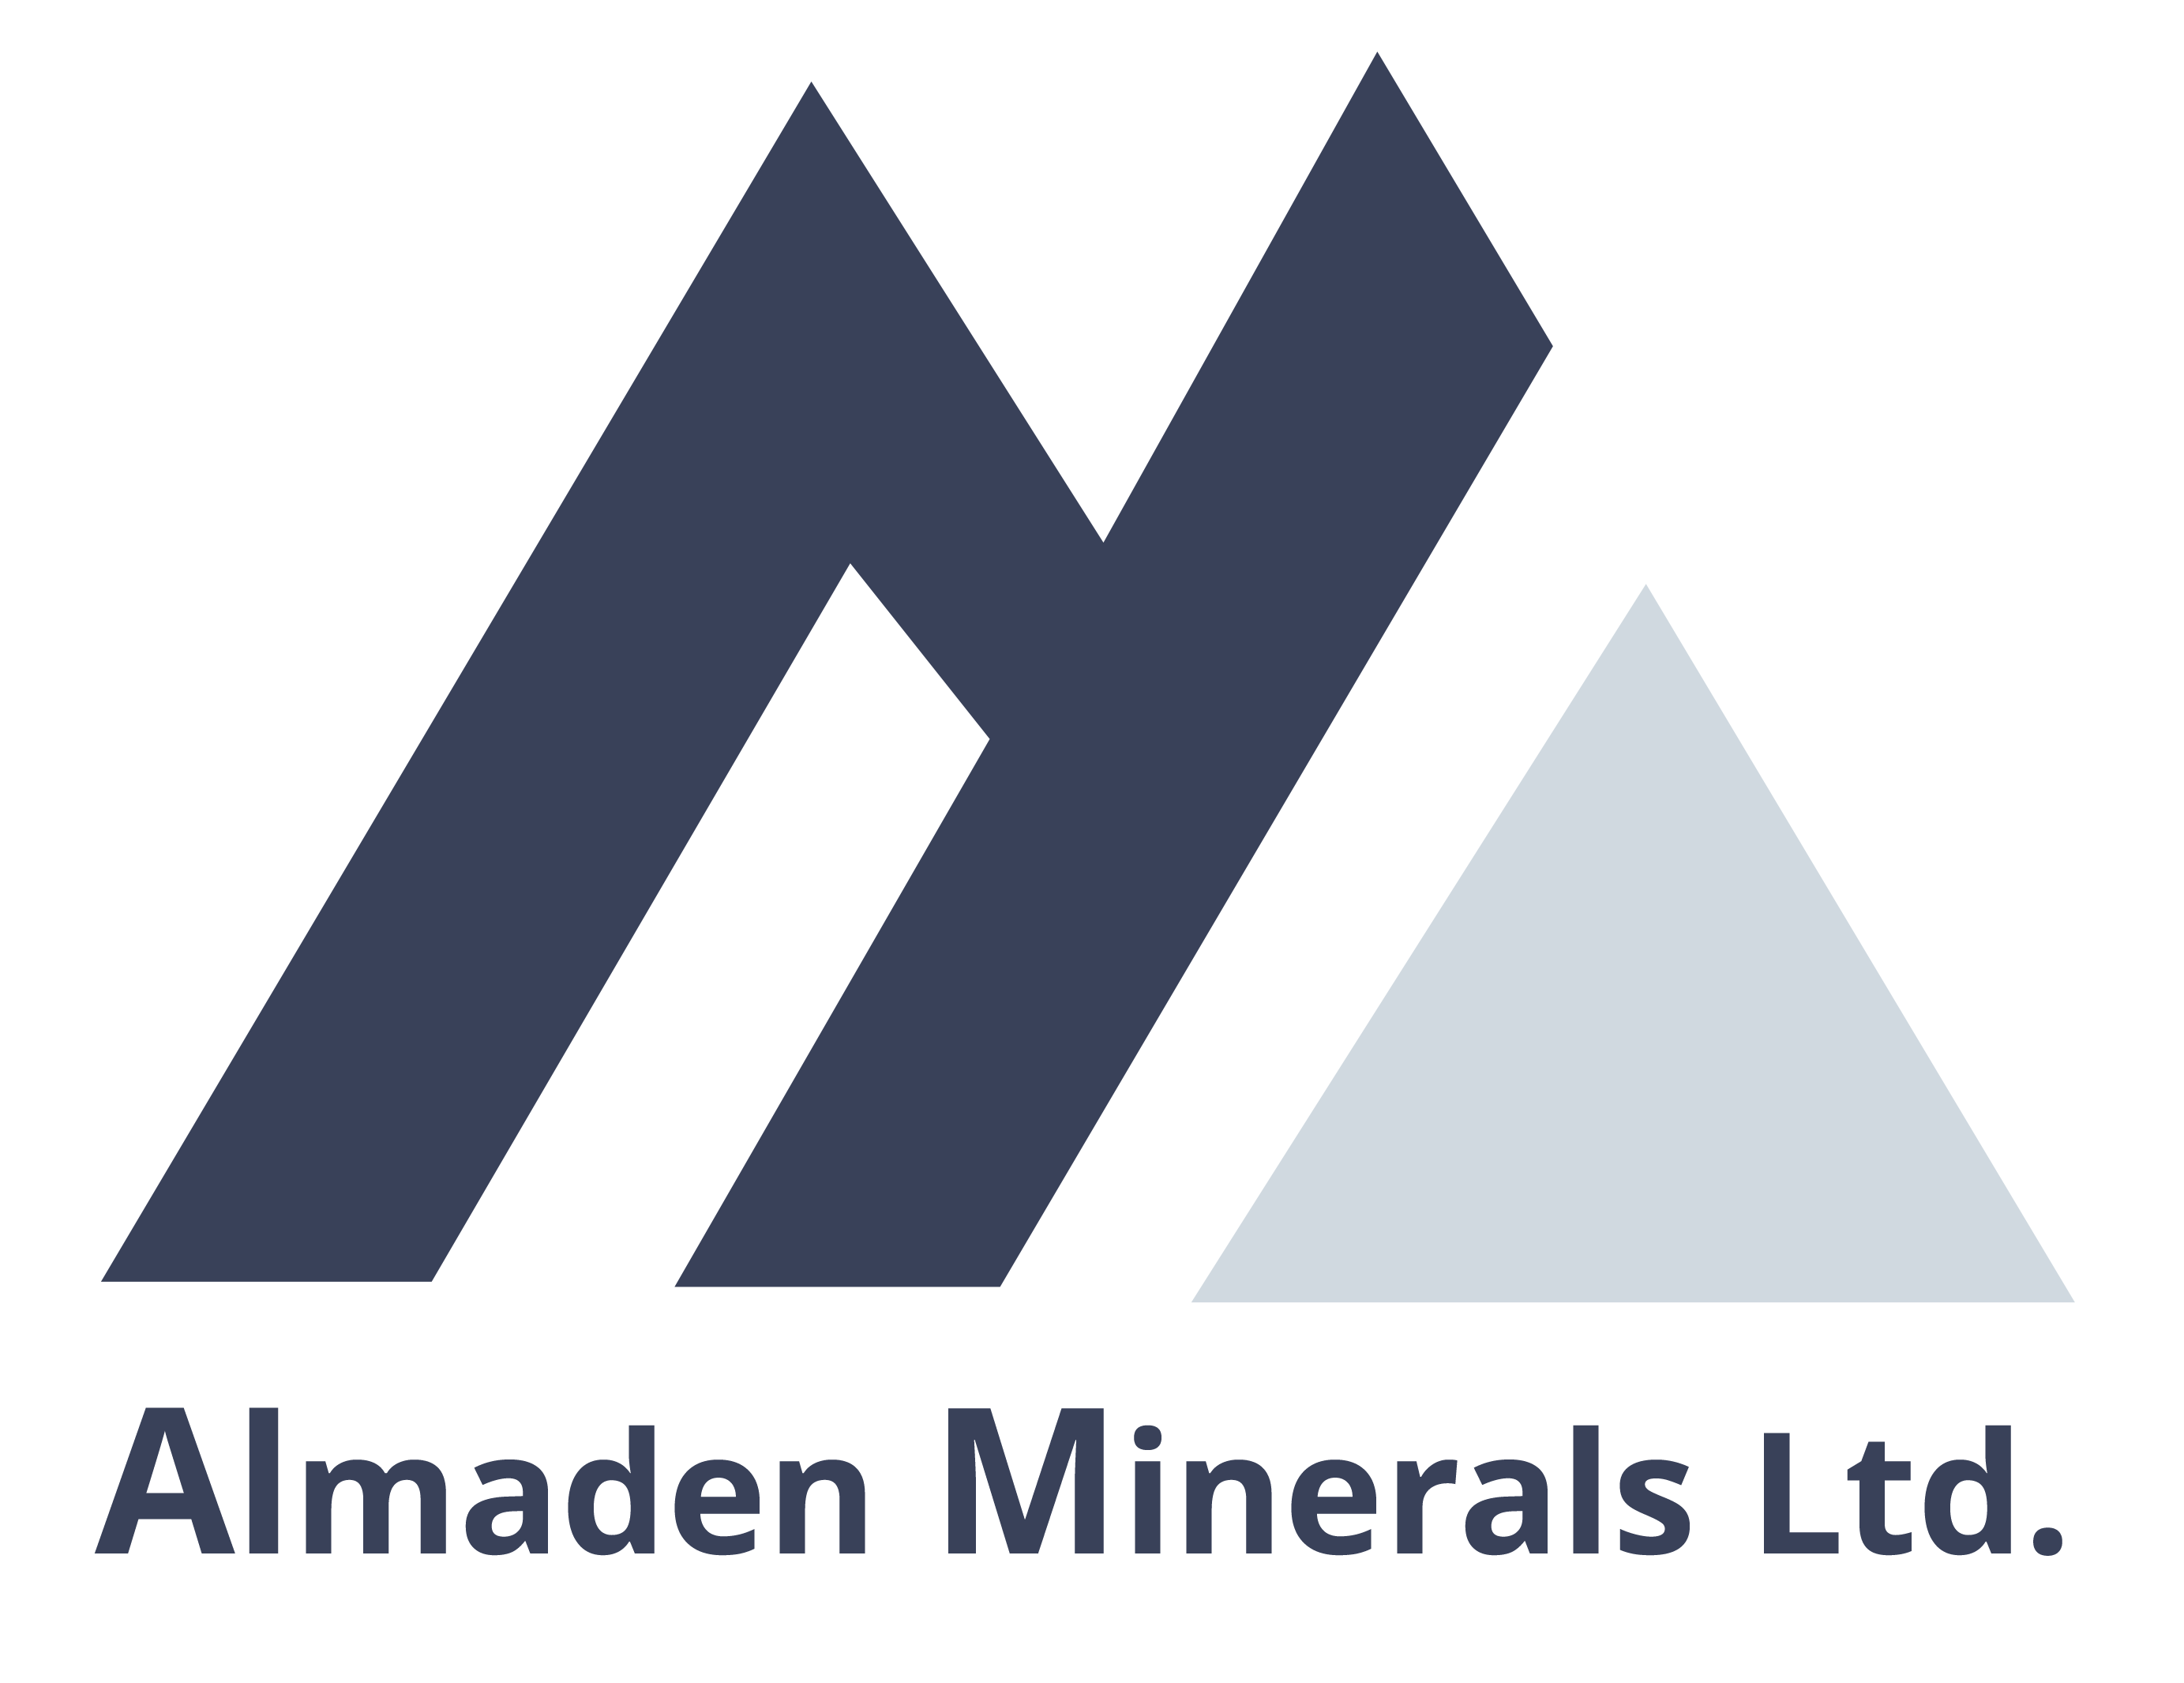 Almaden Announces Pathfinder Elements Validate SE Alteration Zone Potential for Epithermal Veining